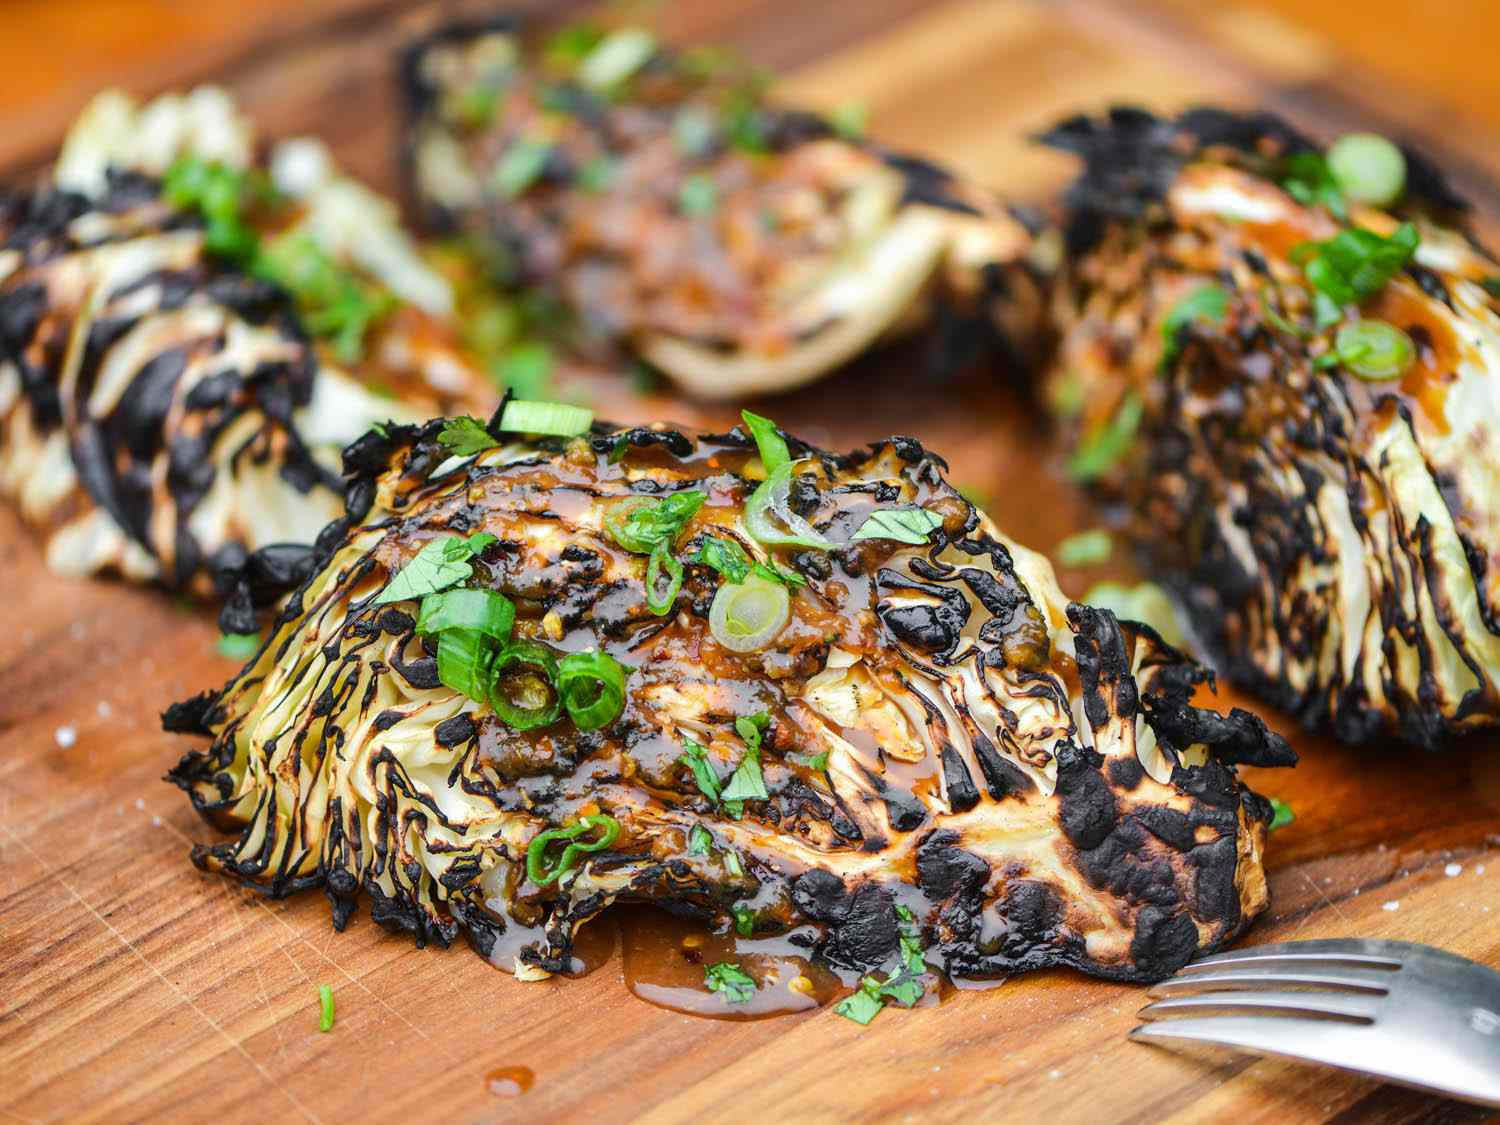 20141008-grilled-cabbage-with-ginger-miso-dressing-joshua-bousel.jpg